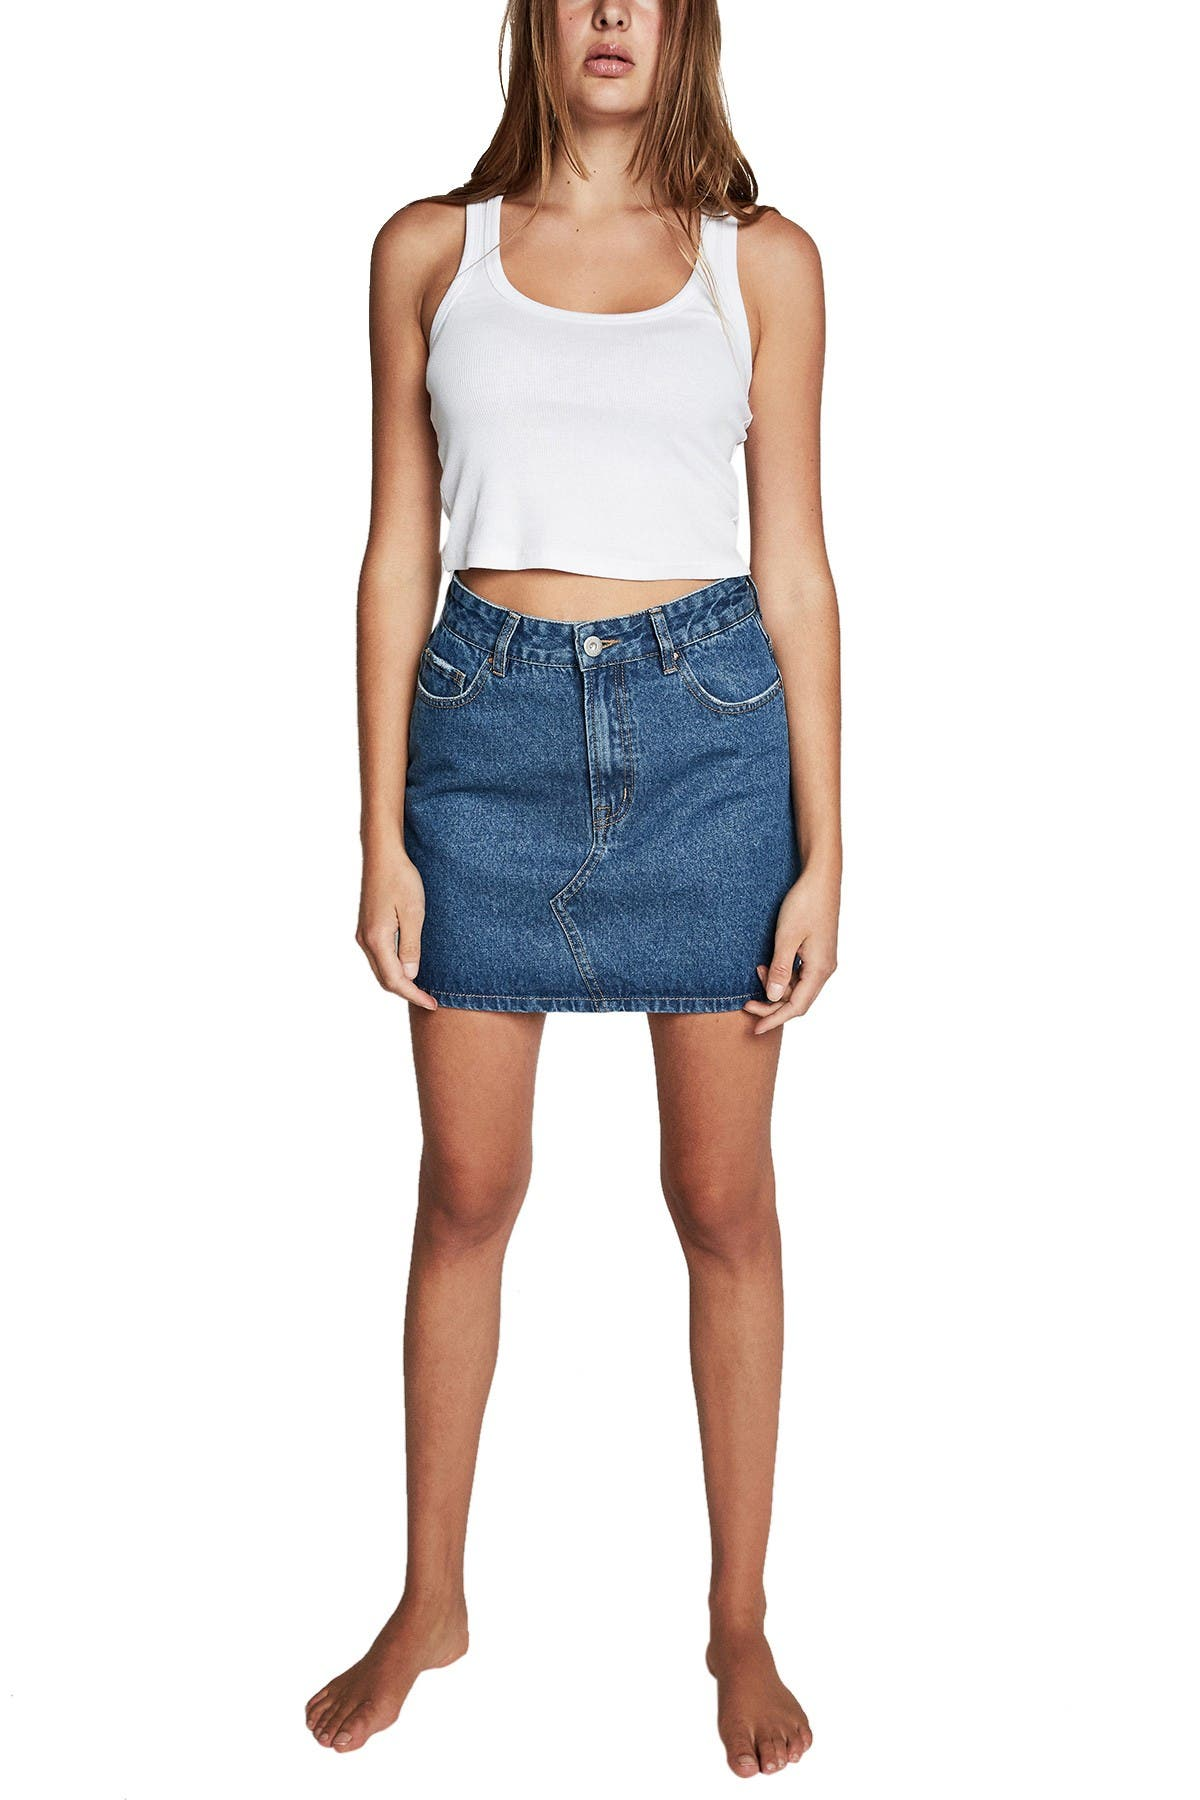 Image of Cotton On The Classic Denim Skirt